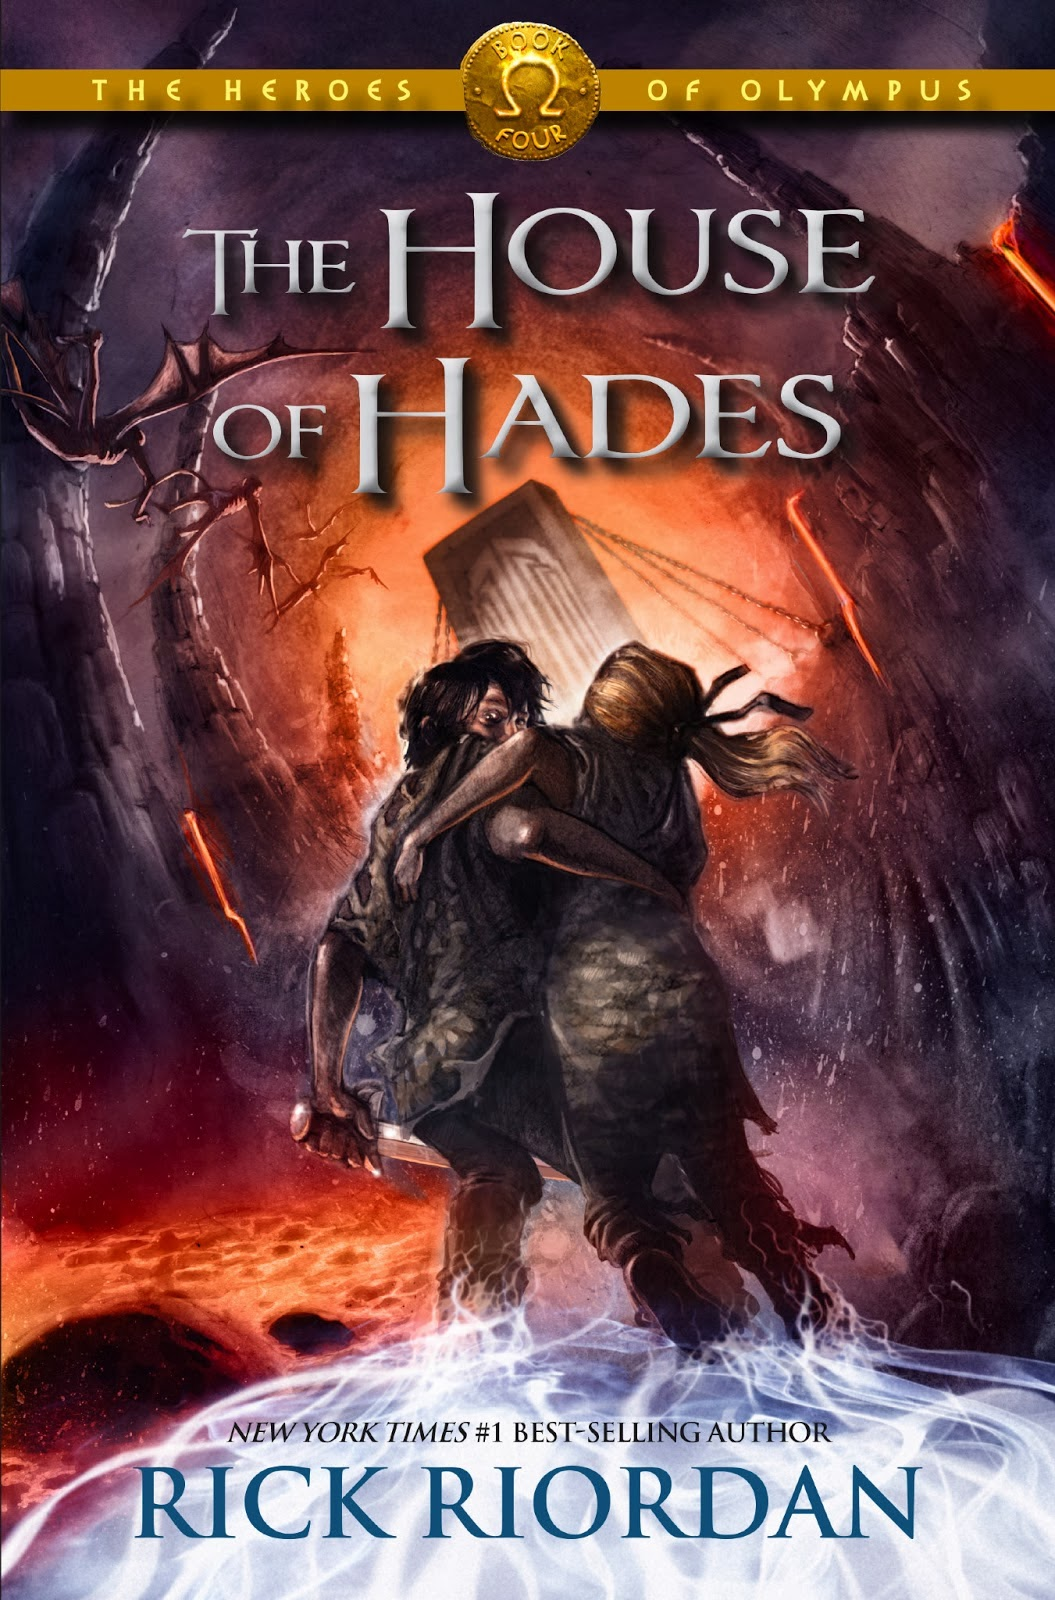 Portada de The House of Hades